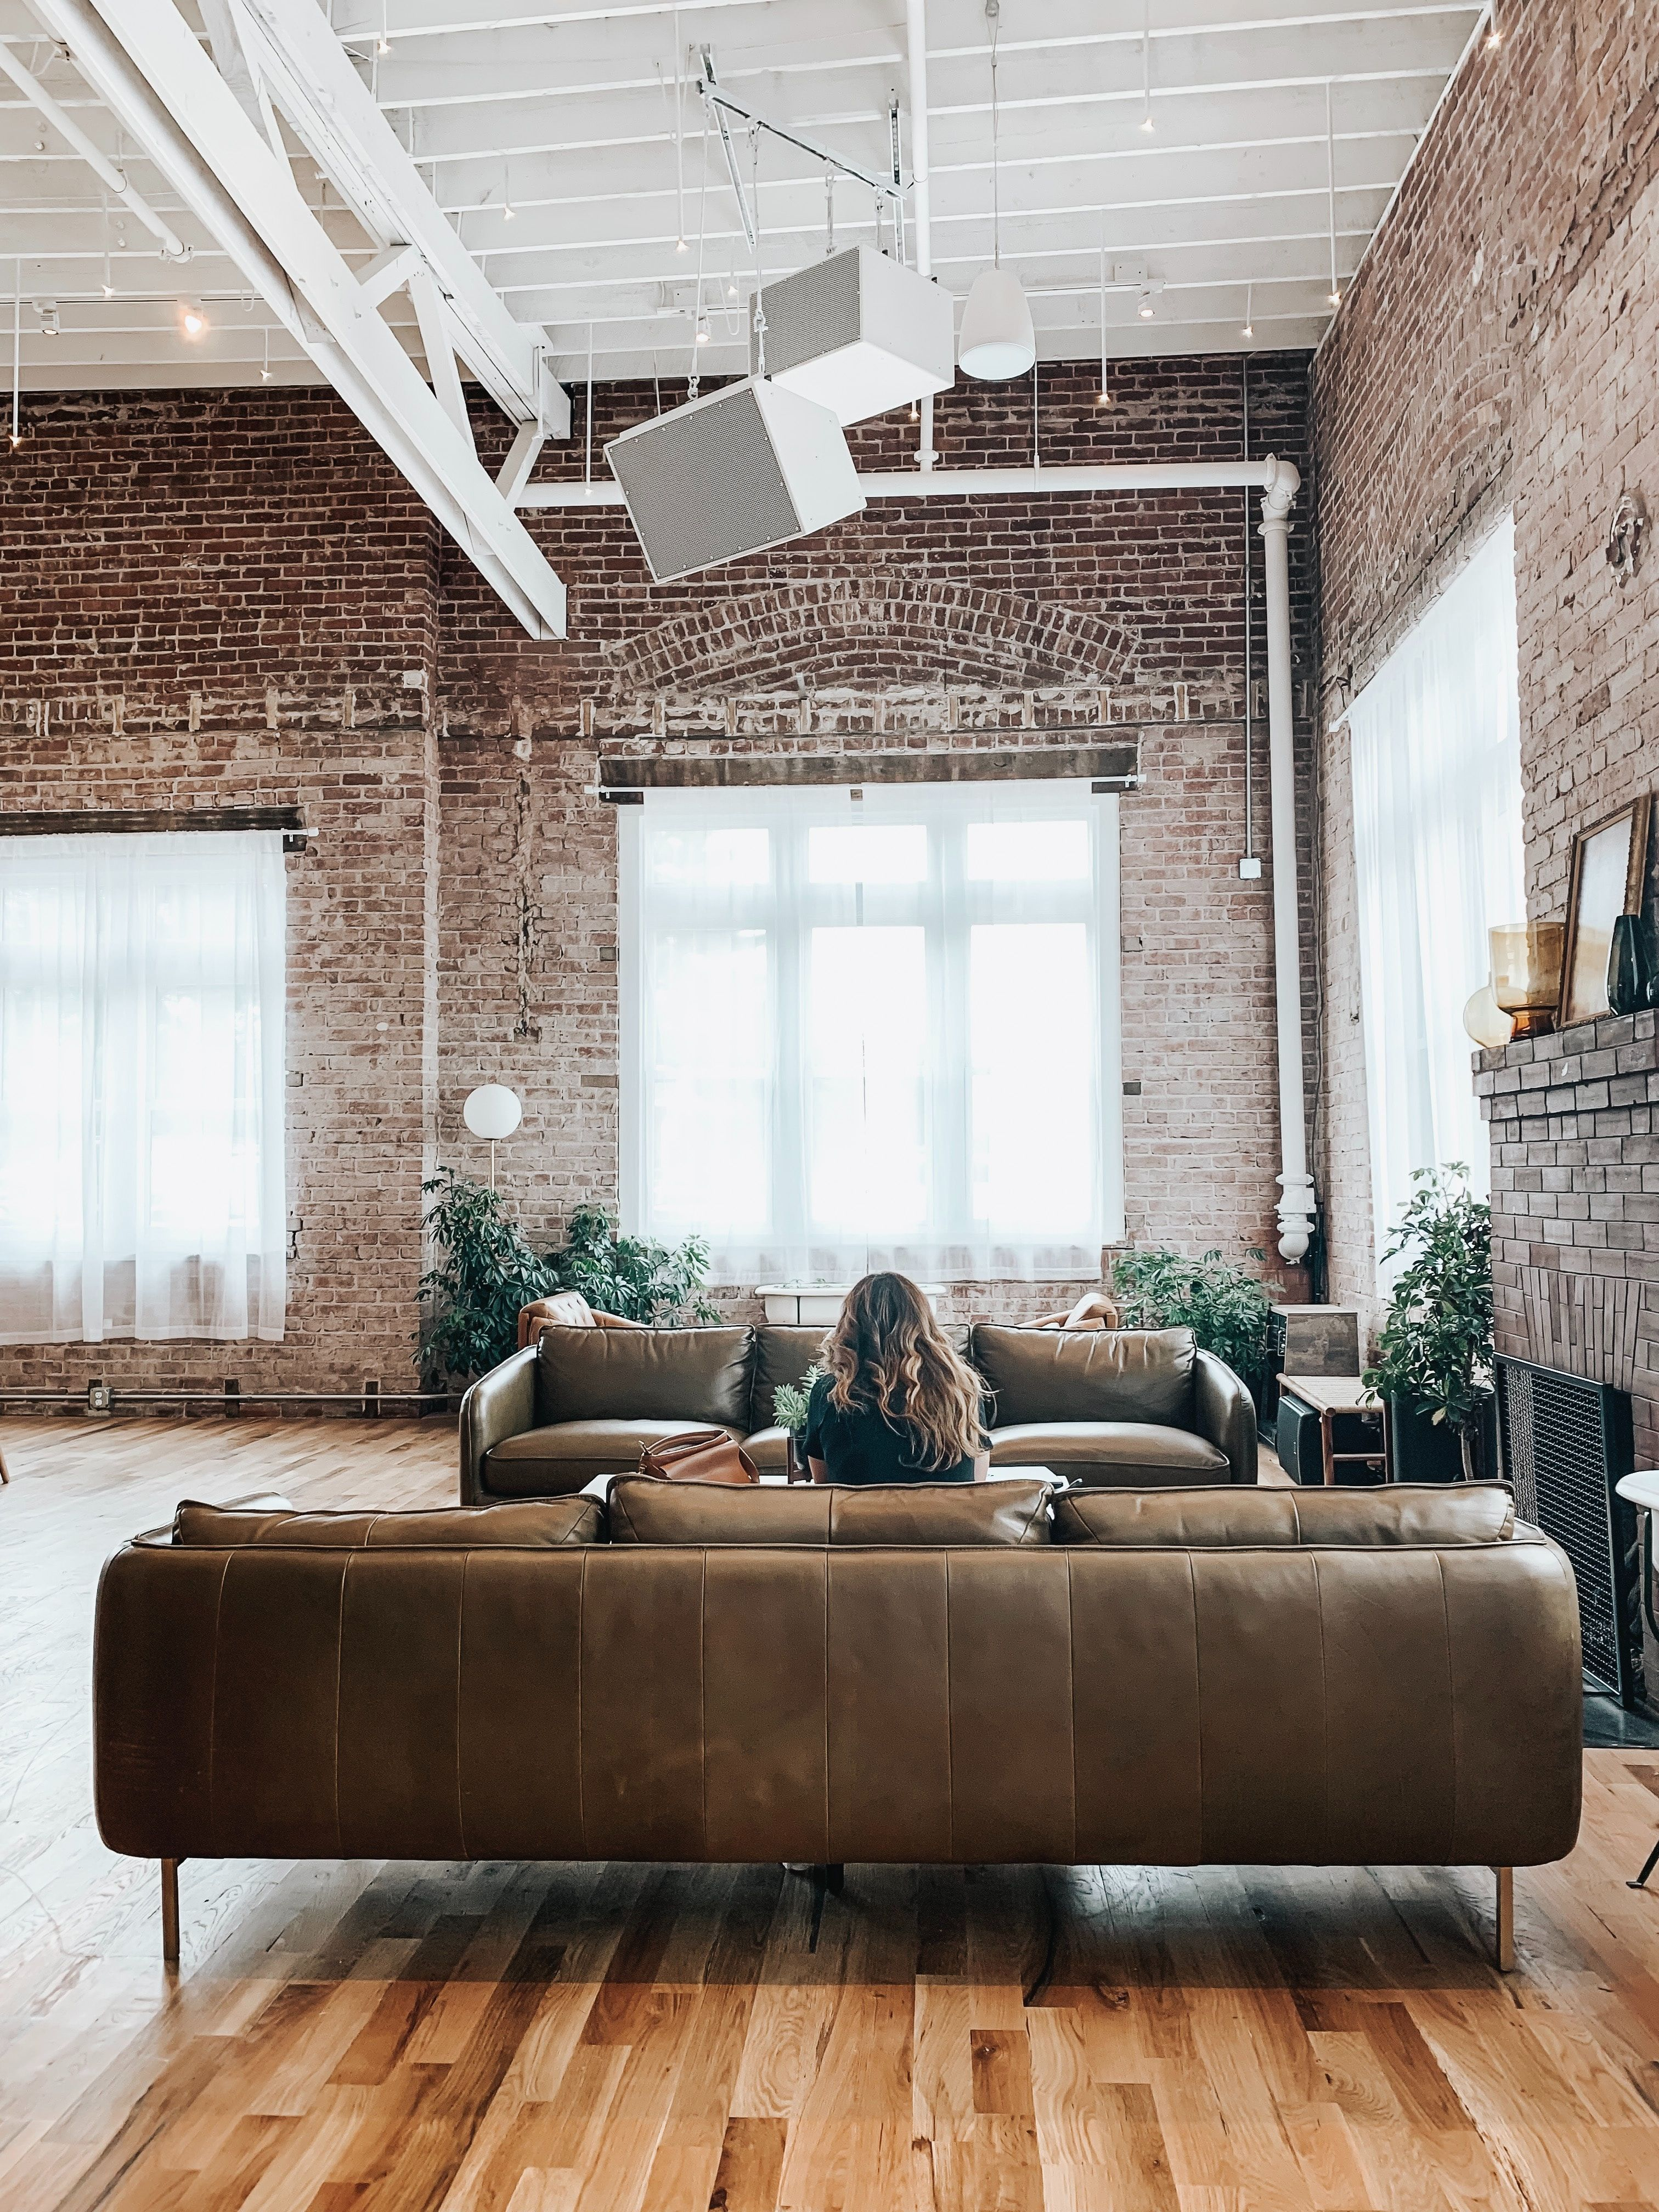 Loft Interior Design 6 Important Things To Consider Industrial